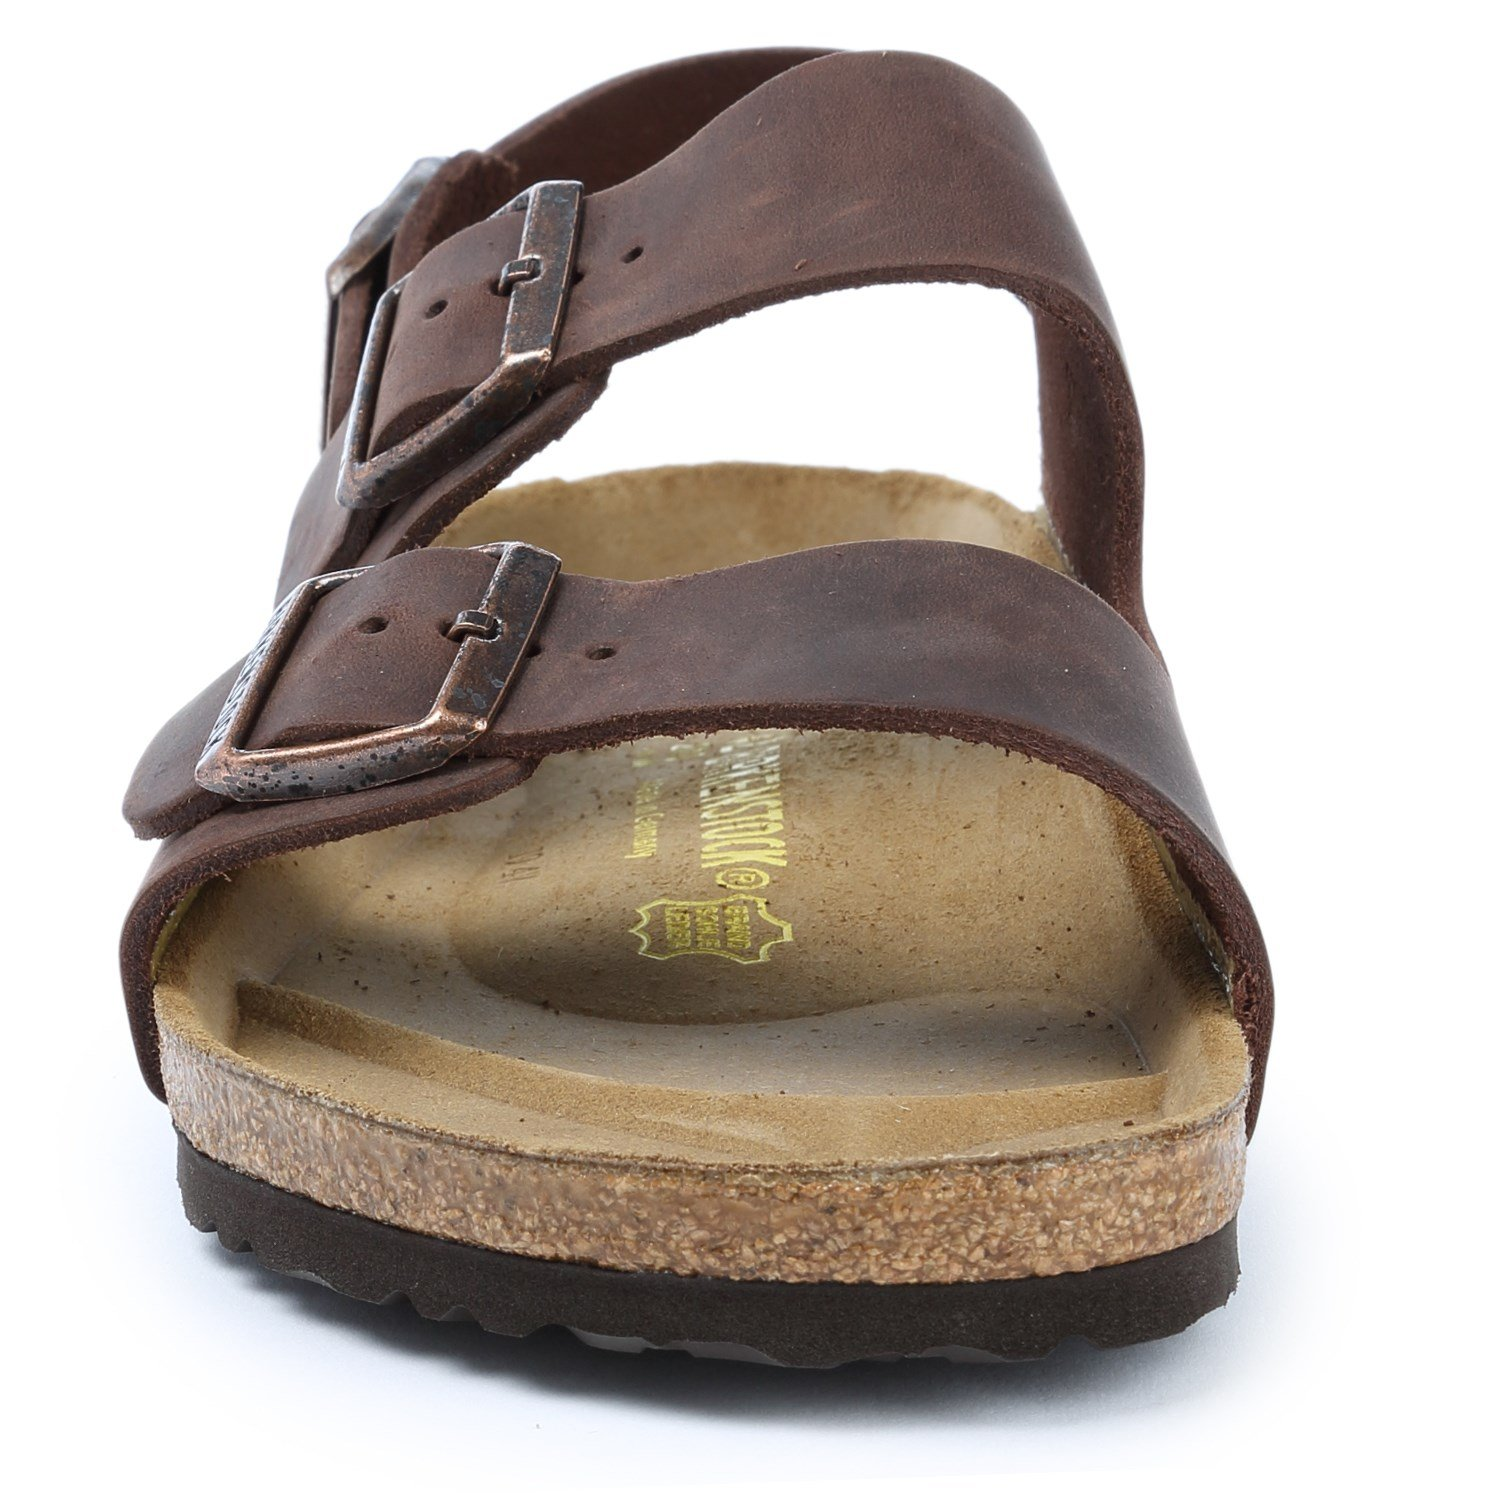 453df53e504e Birkenstock Milano Oiled Leather Soft Footbed Sandals